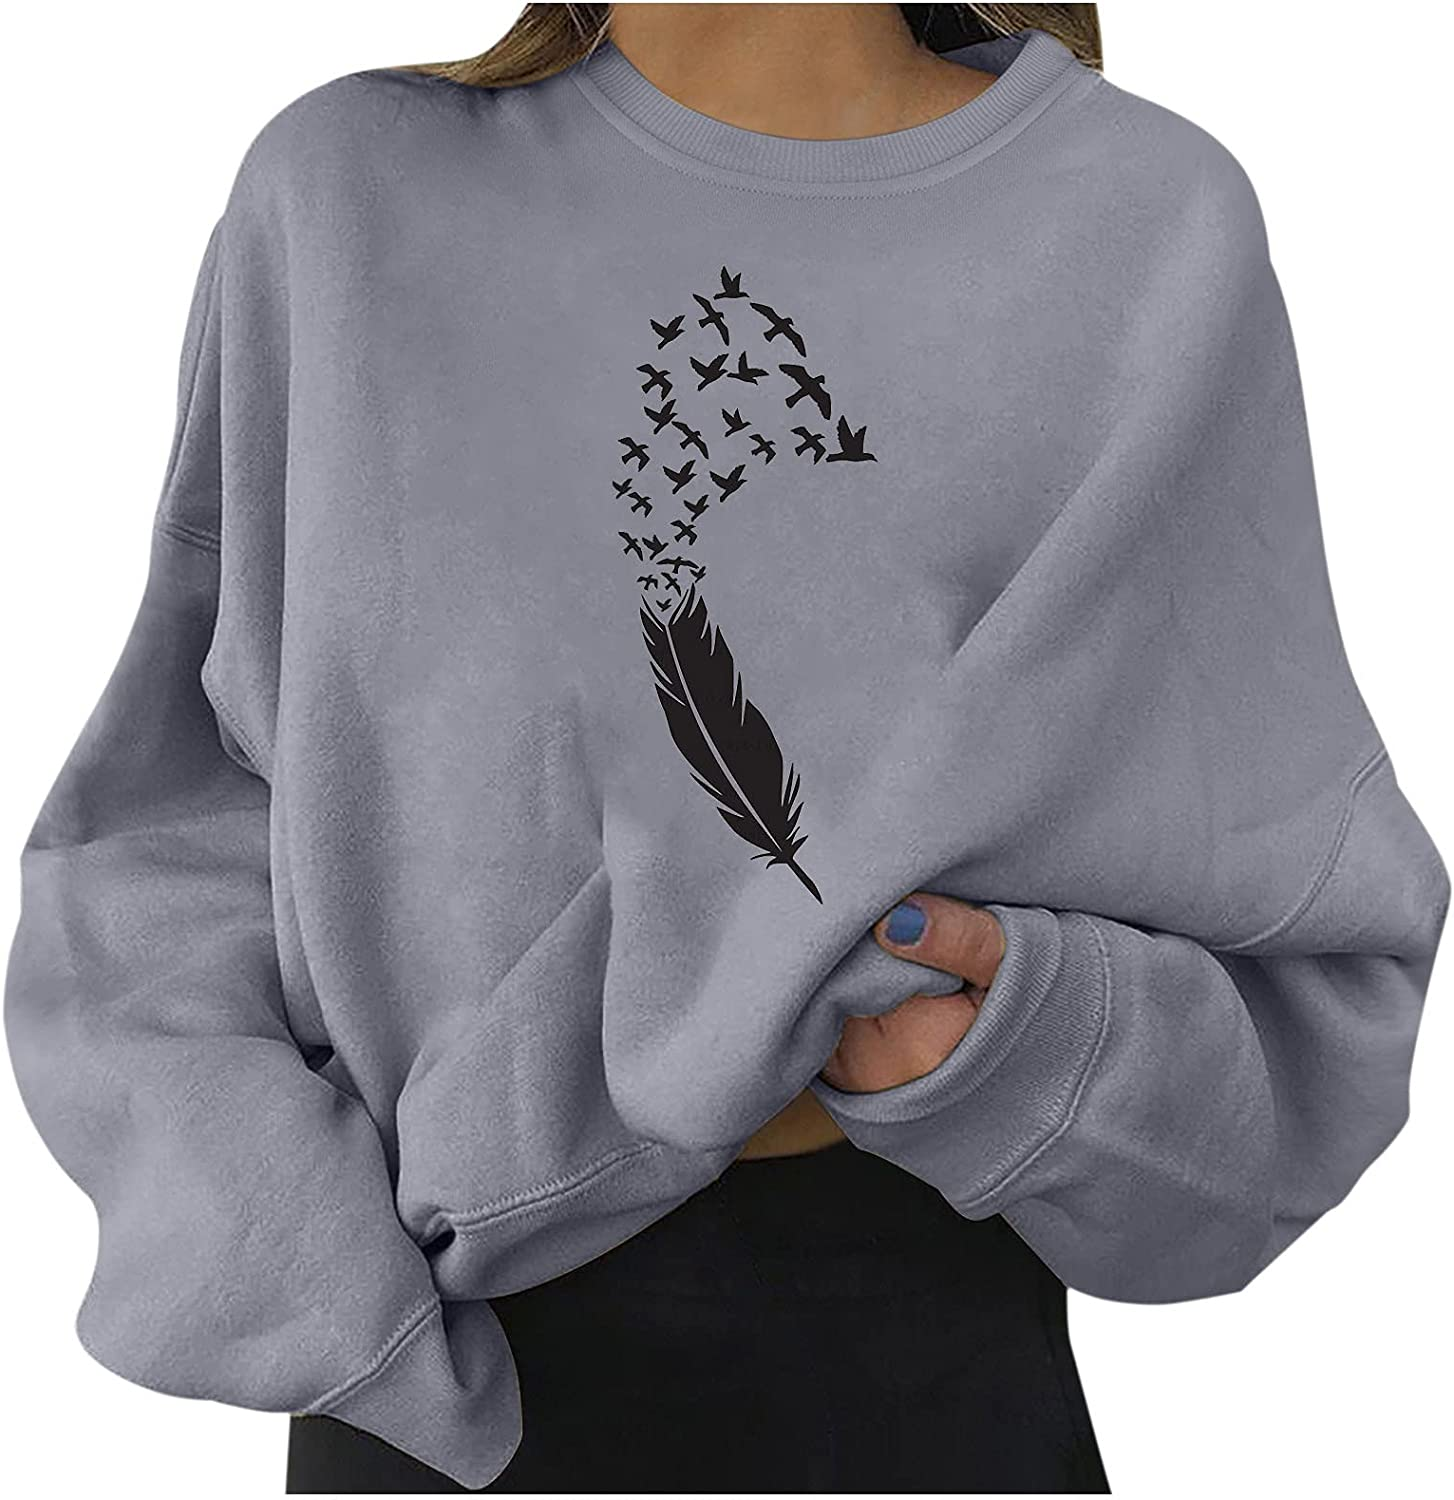 Xiangdanful Ladies Courier shipping free shipping Printed Casual Short Sweatshir Max 59% OFF Pullover Loose